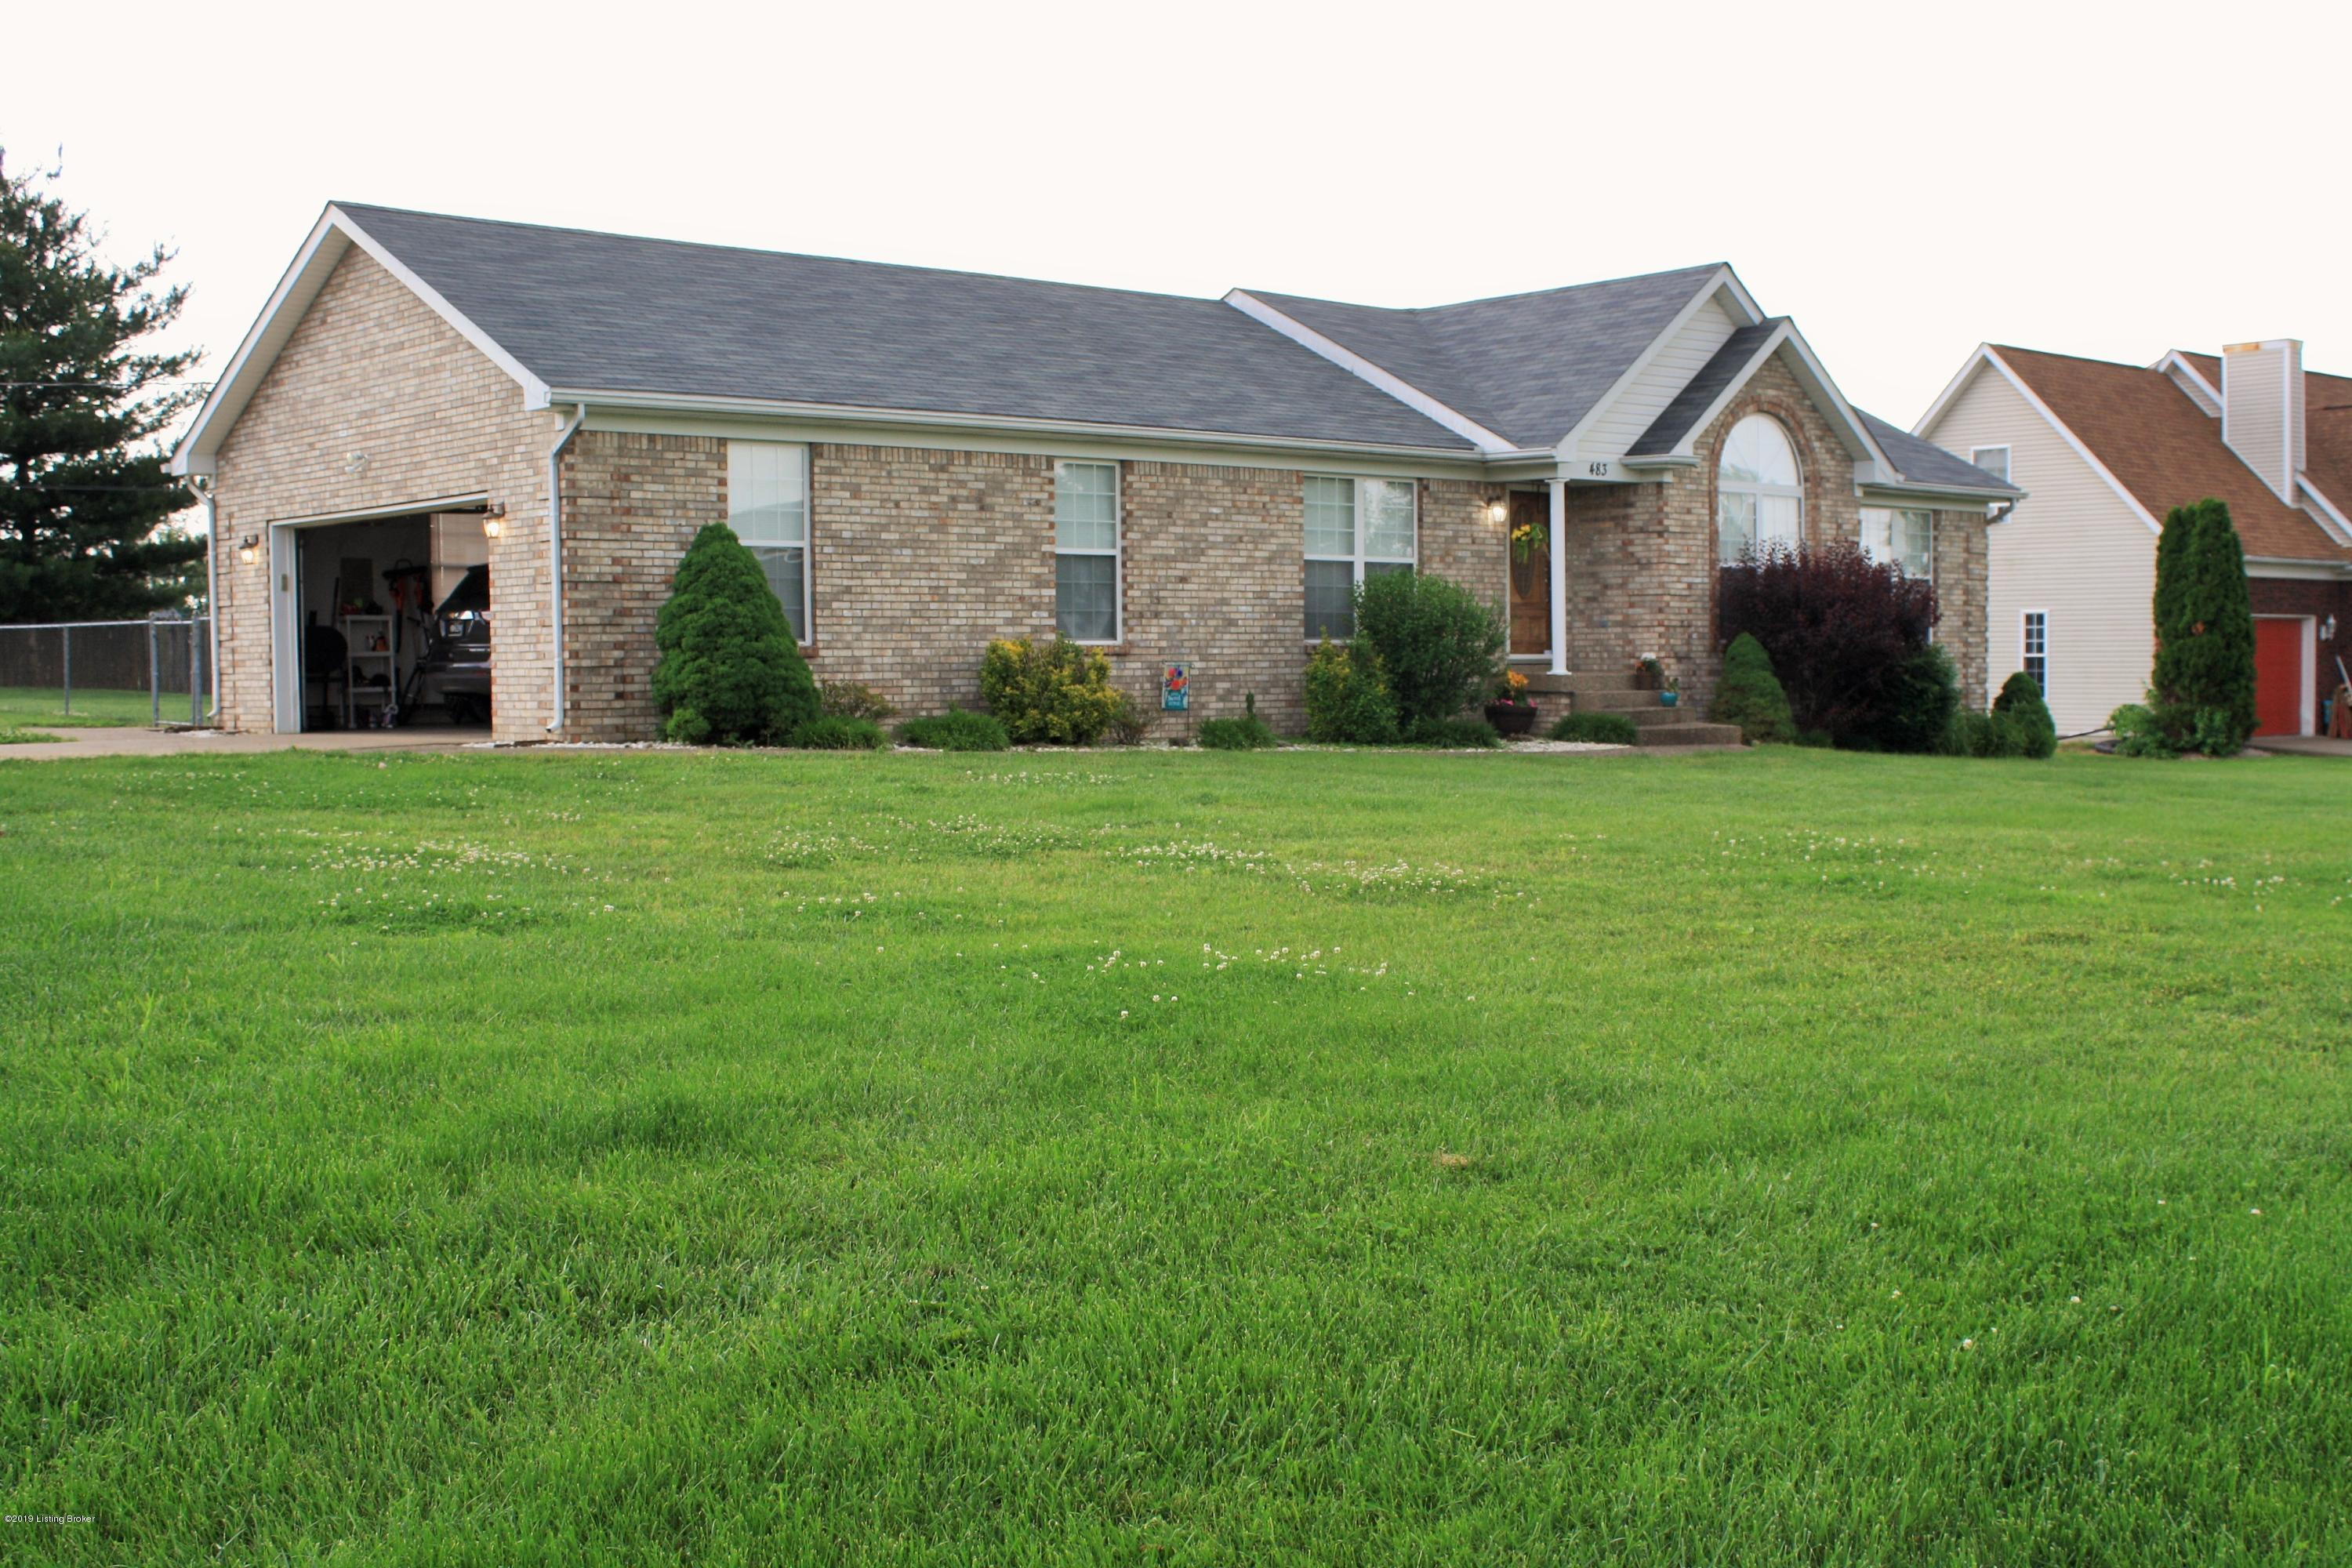 483 Mary David Dr, Shepherdsville, Kentucky 40165, 3 Bedrooms Bedrooms, 6 Rooms Rooms,2 BathroomsBathrooms,Residential,For Sale,Mary David,1533506